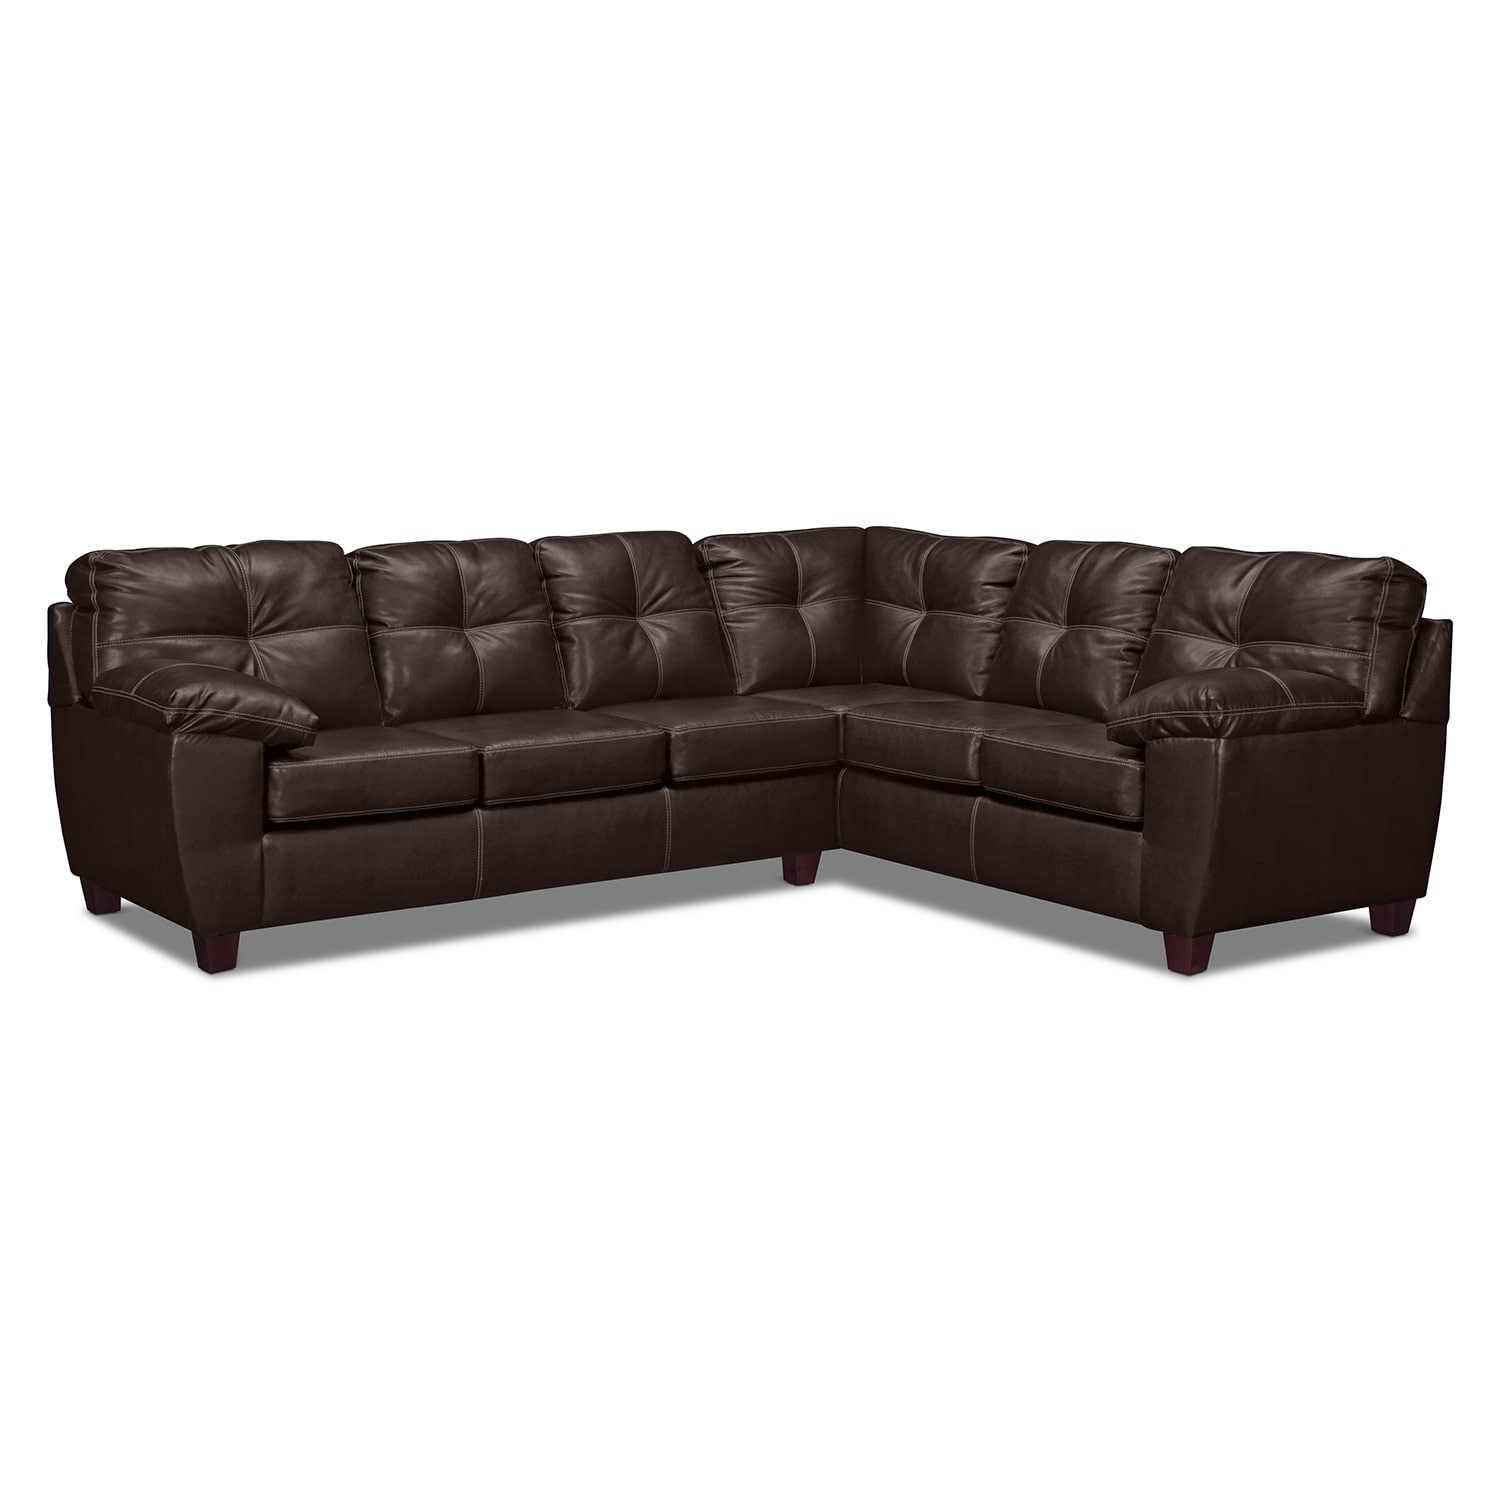 Rialto Brown 2-Pc. Sectional with Left-Facing Innerspring Sleeper